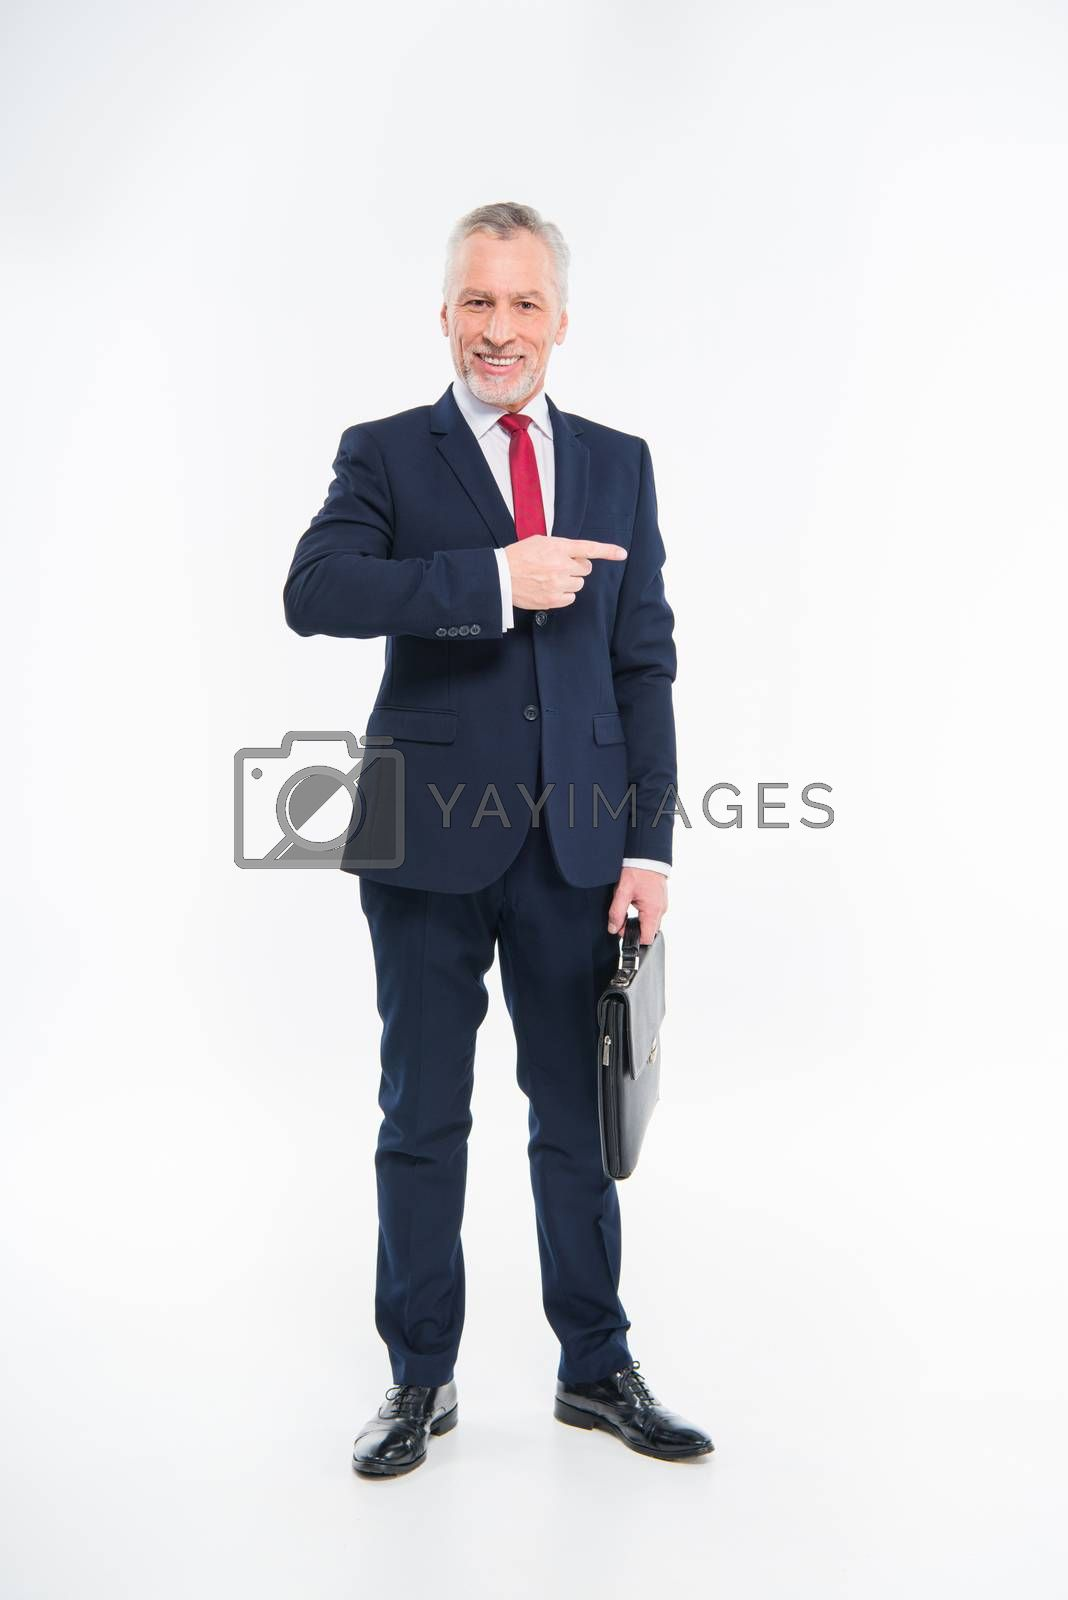 Royalty free image of Smiling businessman pointing with finger  by LightFieldStudios